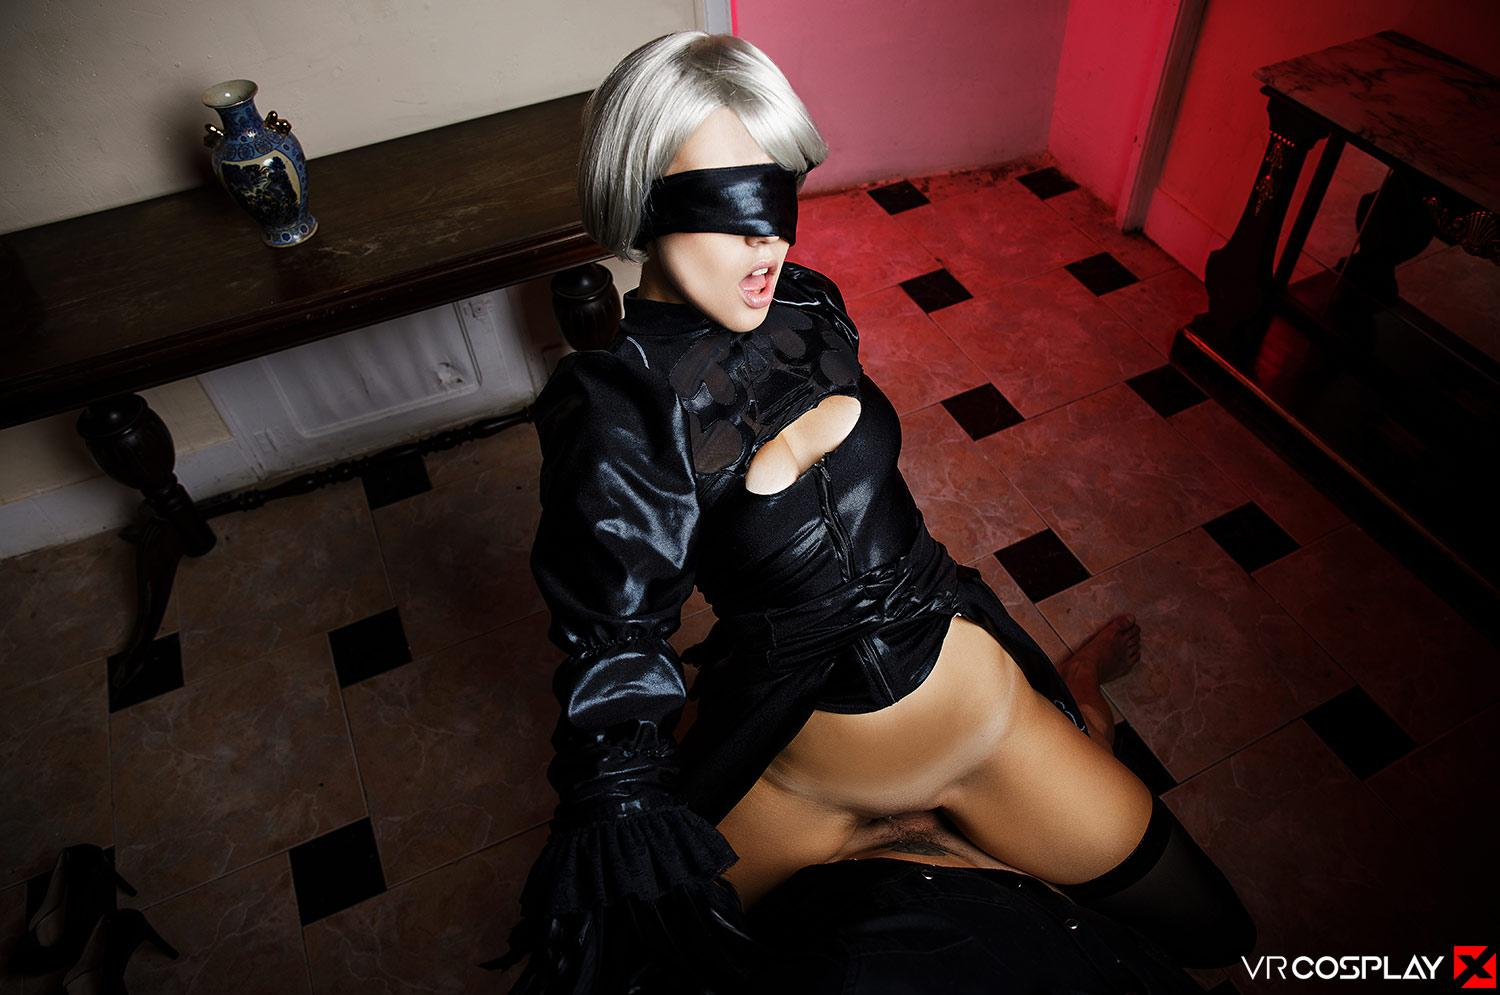 Zoe Doll in Automata Cosplay opening her legs large picture 3